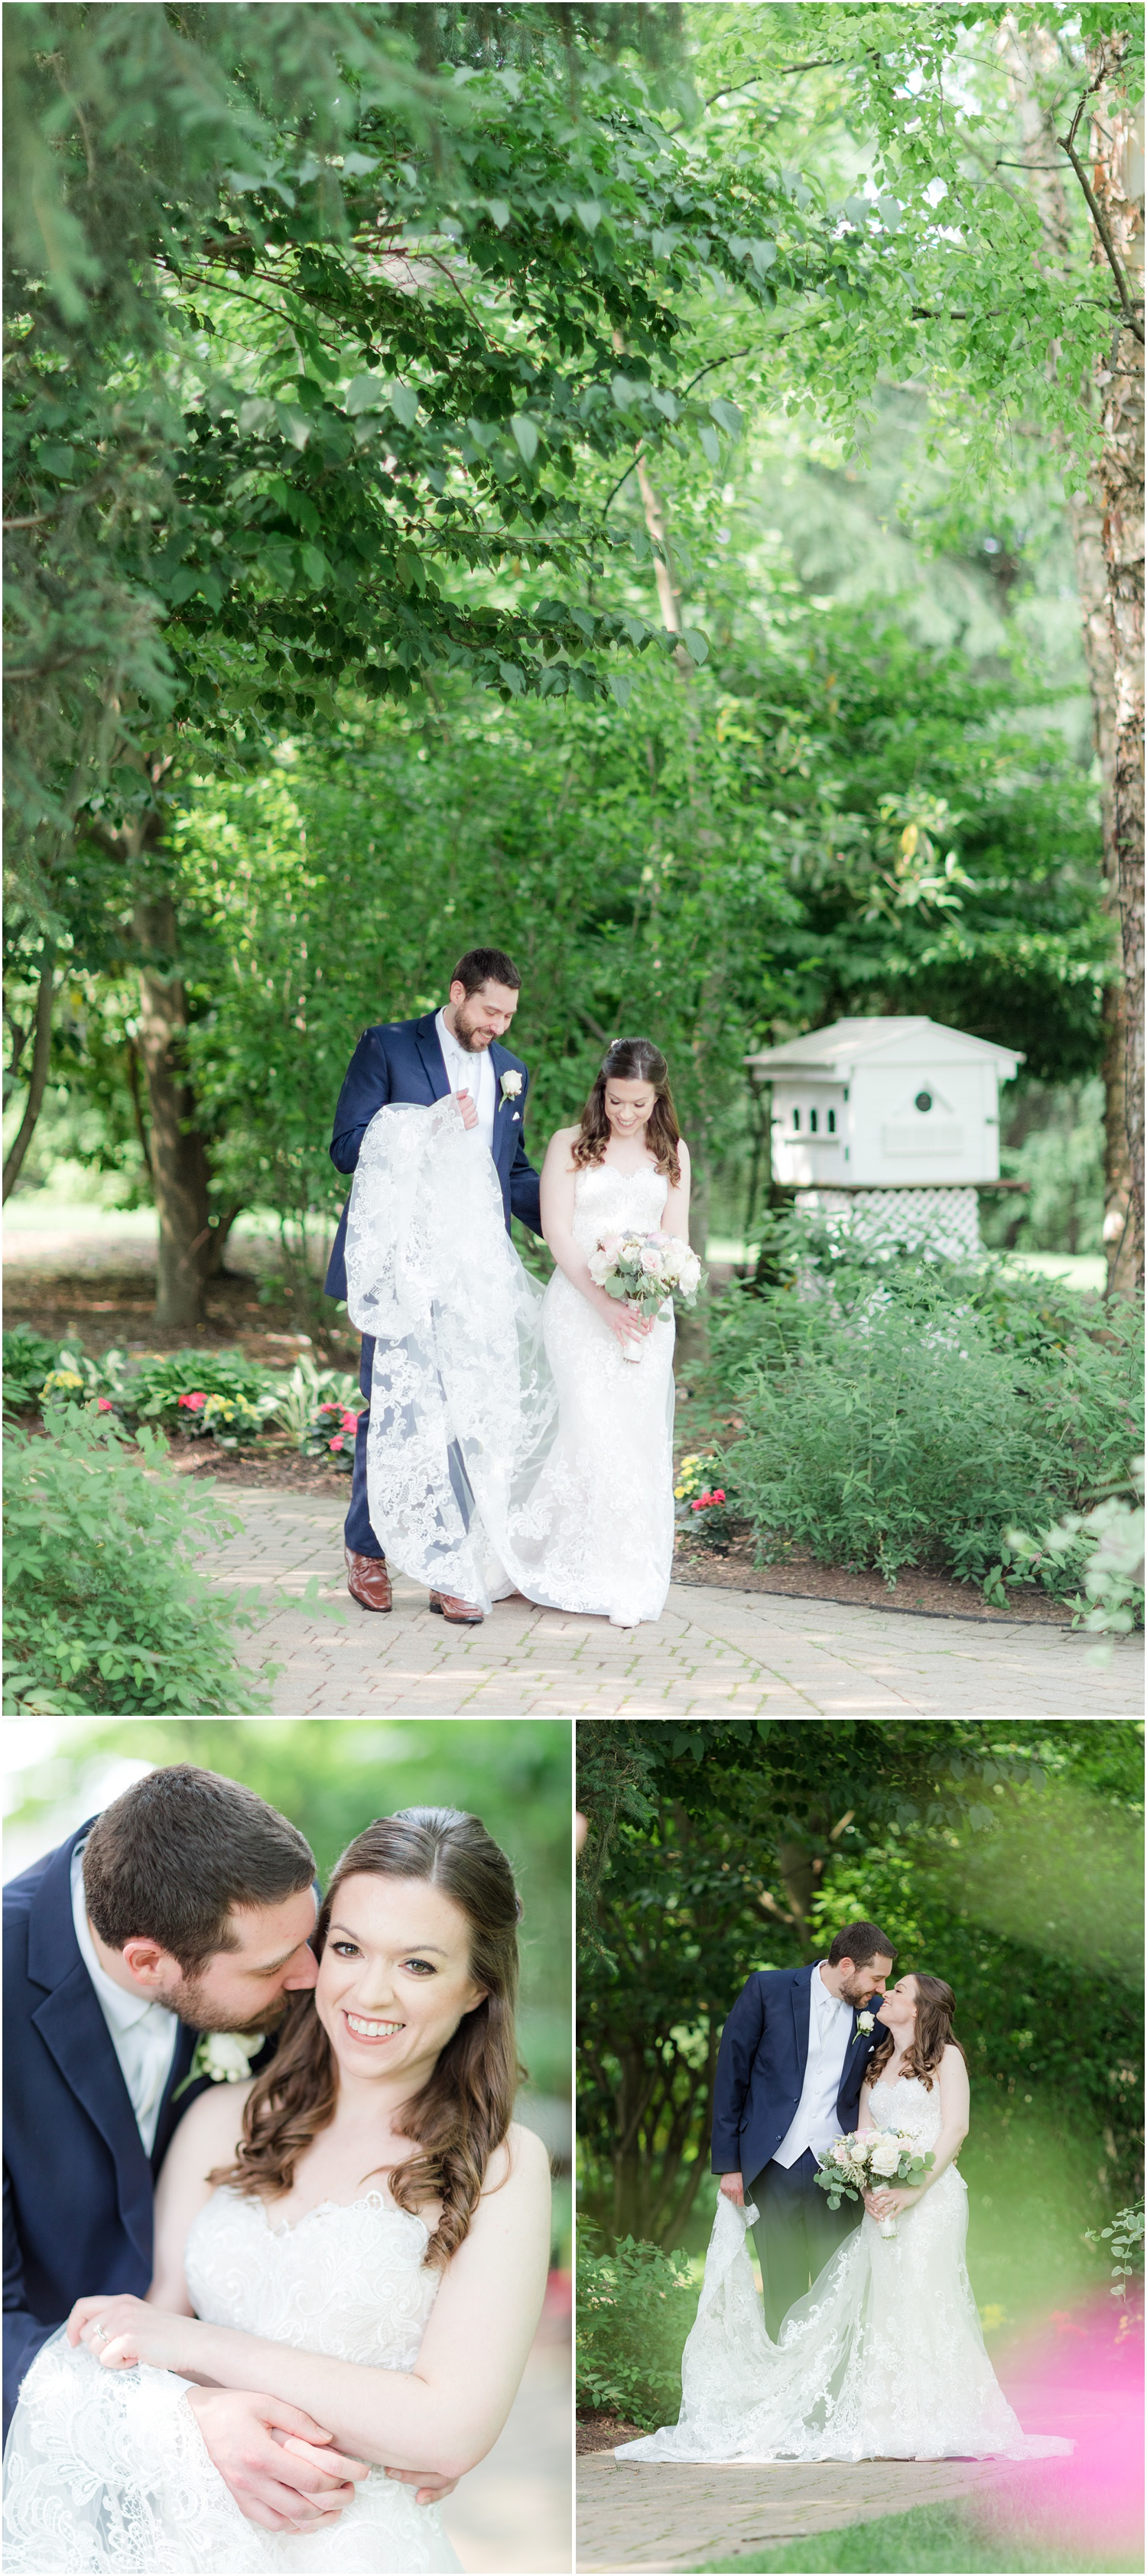 Romantic Bride and groom portraits at The Grain House in Basking Ridge, NJ.